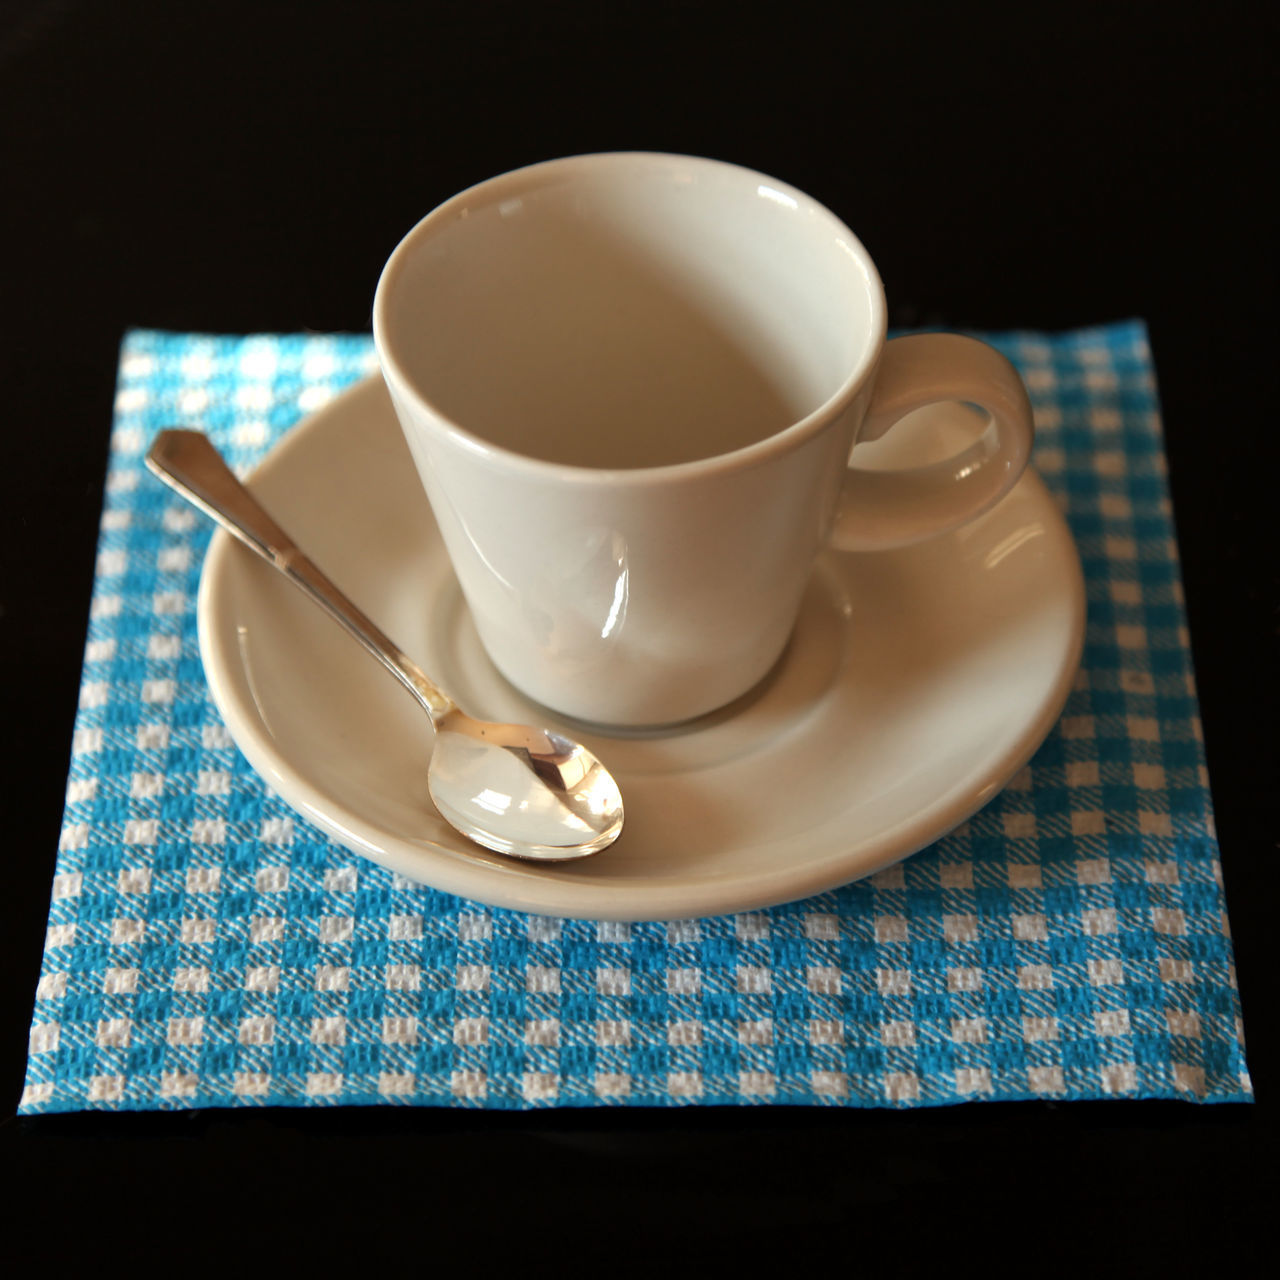 High Angle View Of Empty Crockery On Blue Napkin Against Black Background